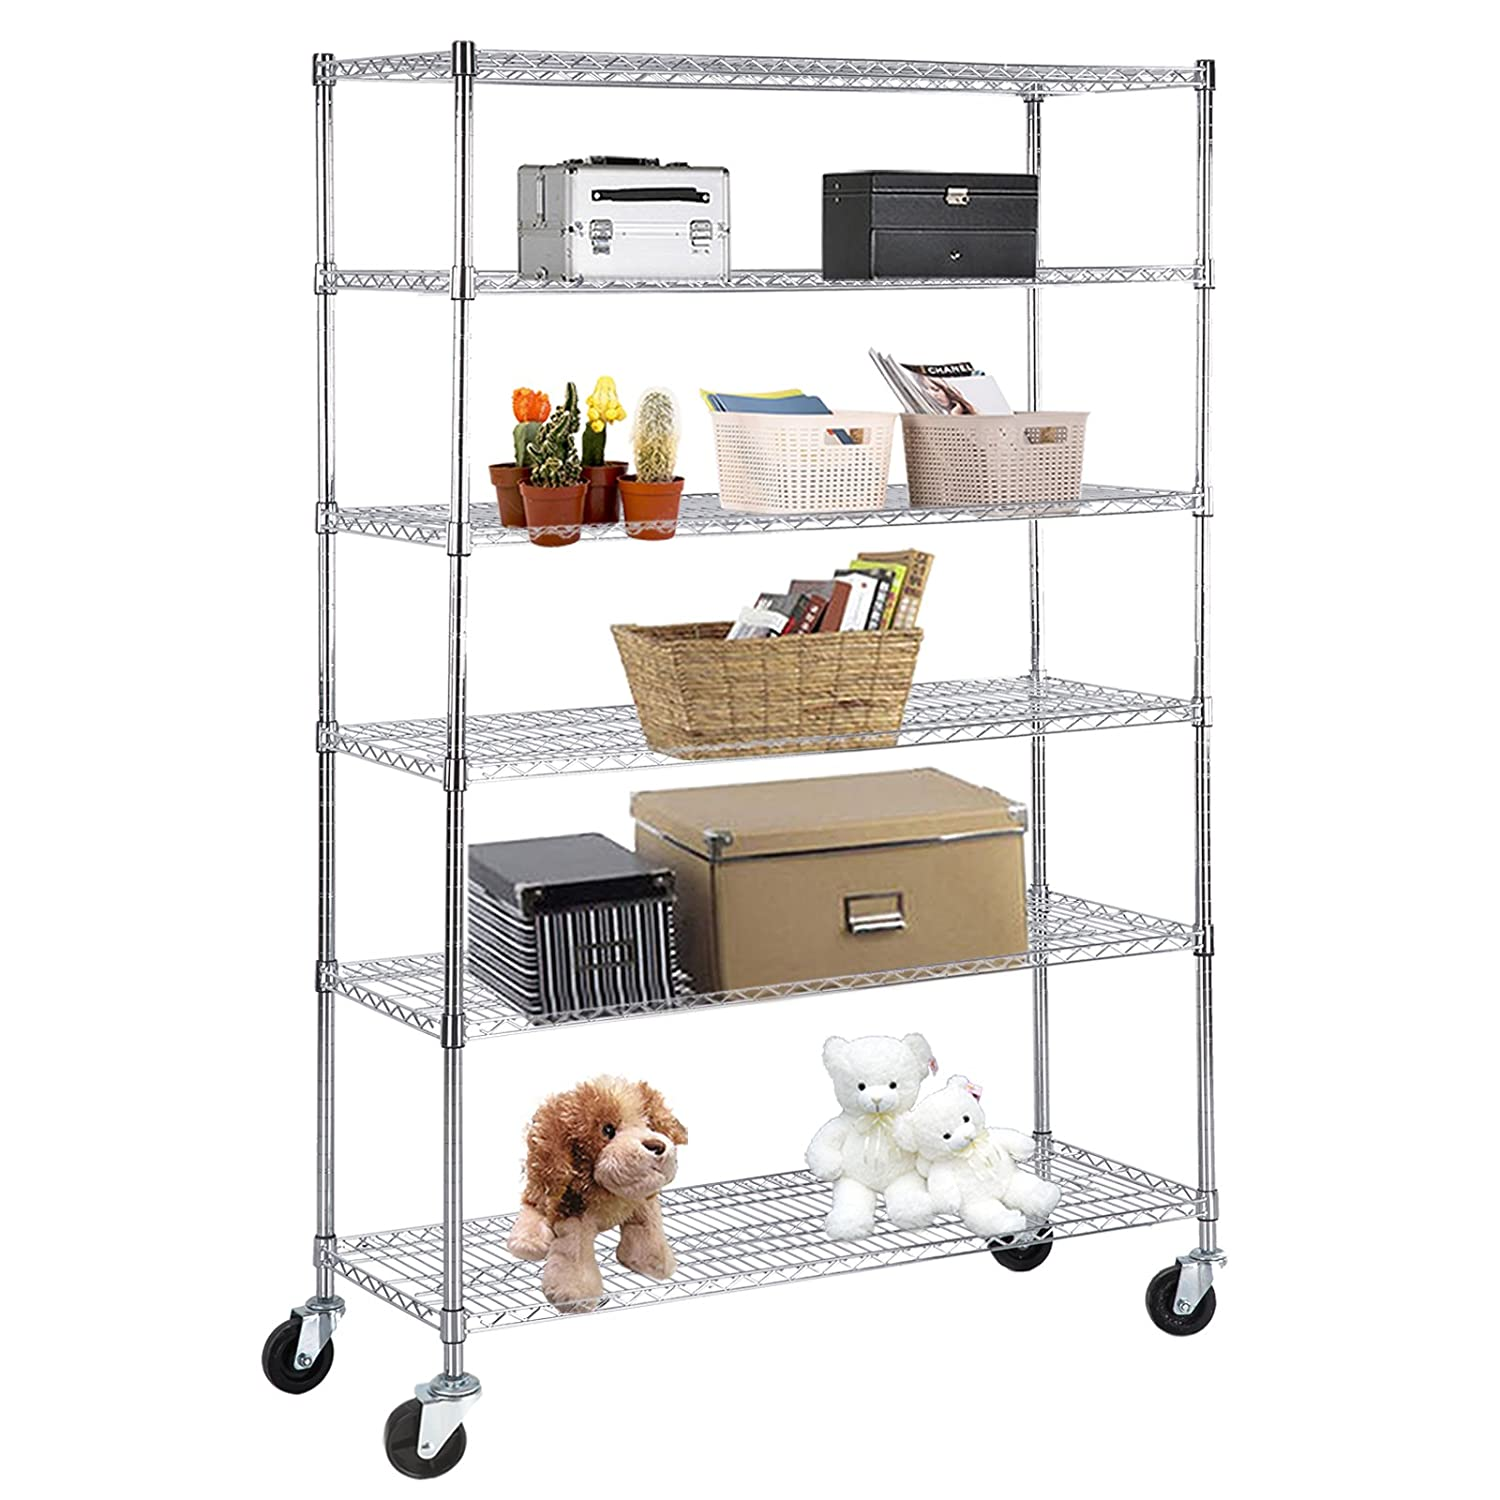 "SUNCOO Wire Shelving Unit Storage Rack Metal Kitchen Shelf Stainless Steel Adjustable 6 Tier Shelves with Wheels Chrome 48"" W x 82"" H x 18"" D"